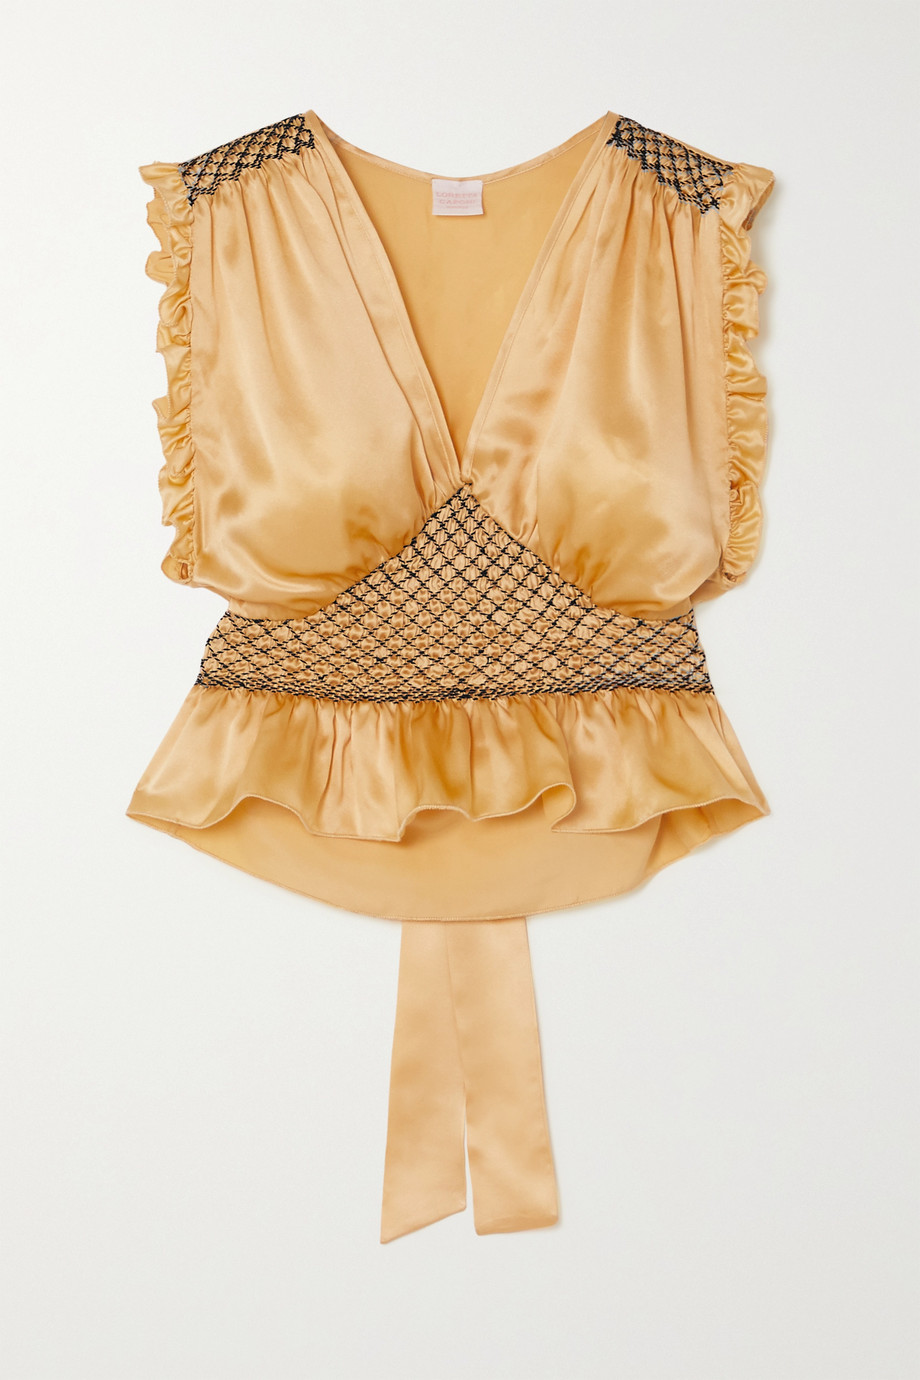 LORETTA CAPONI Valeria cropped bow-detailed ruffled smocked silk-satin top